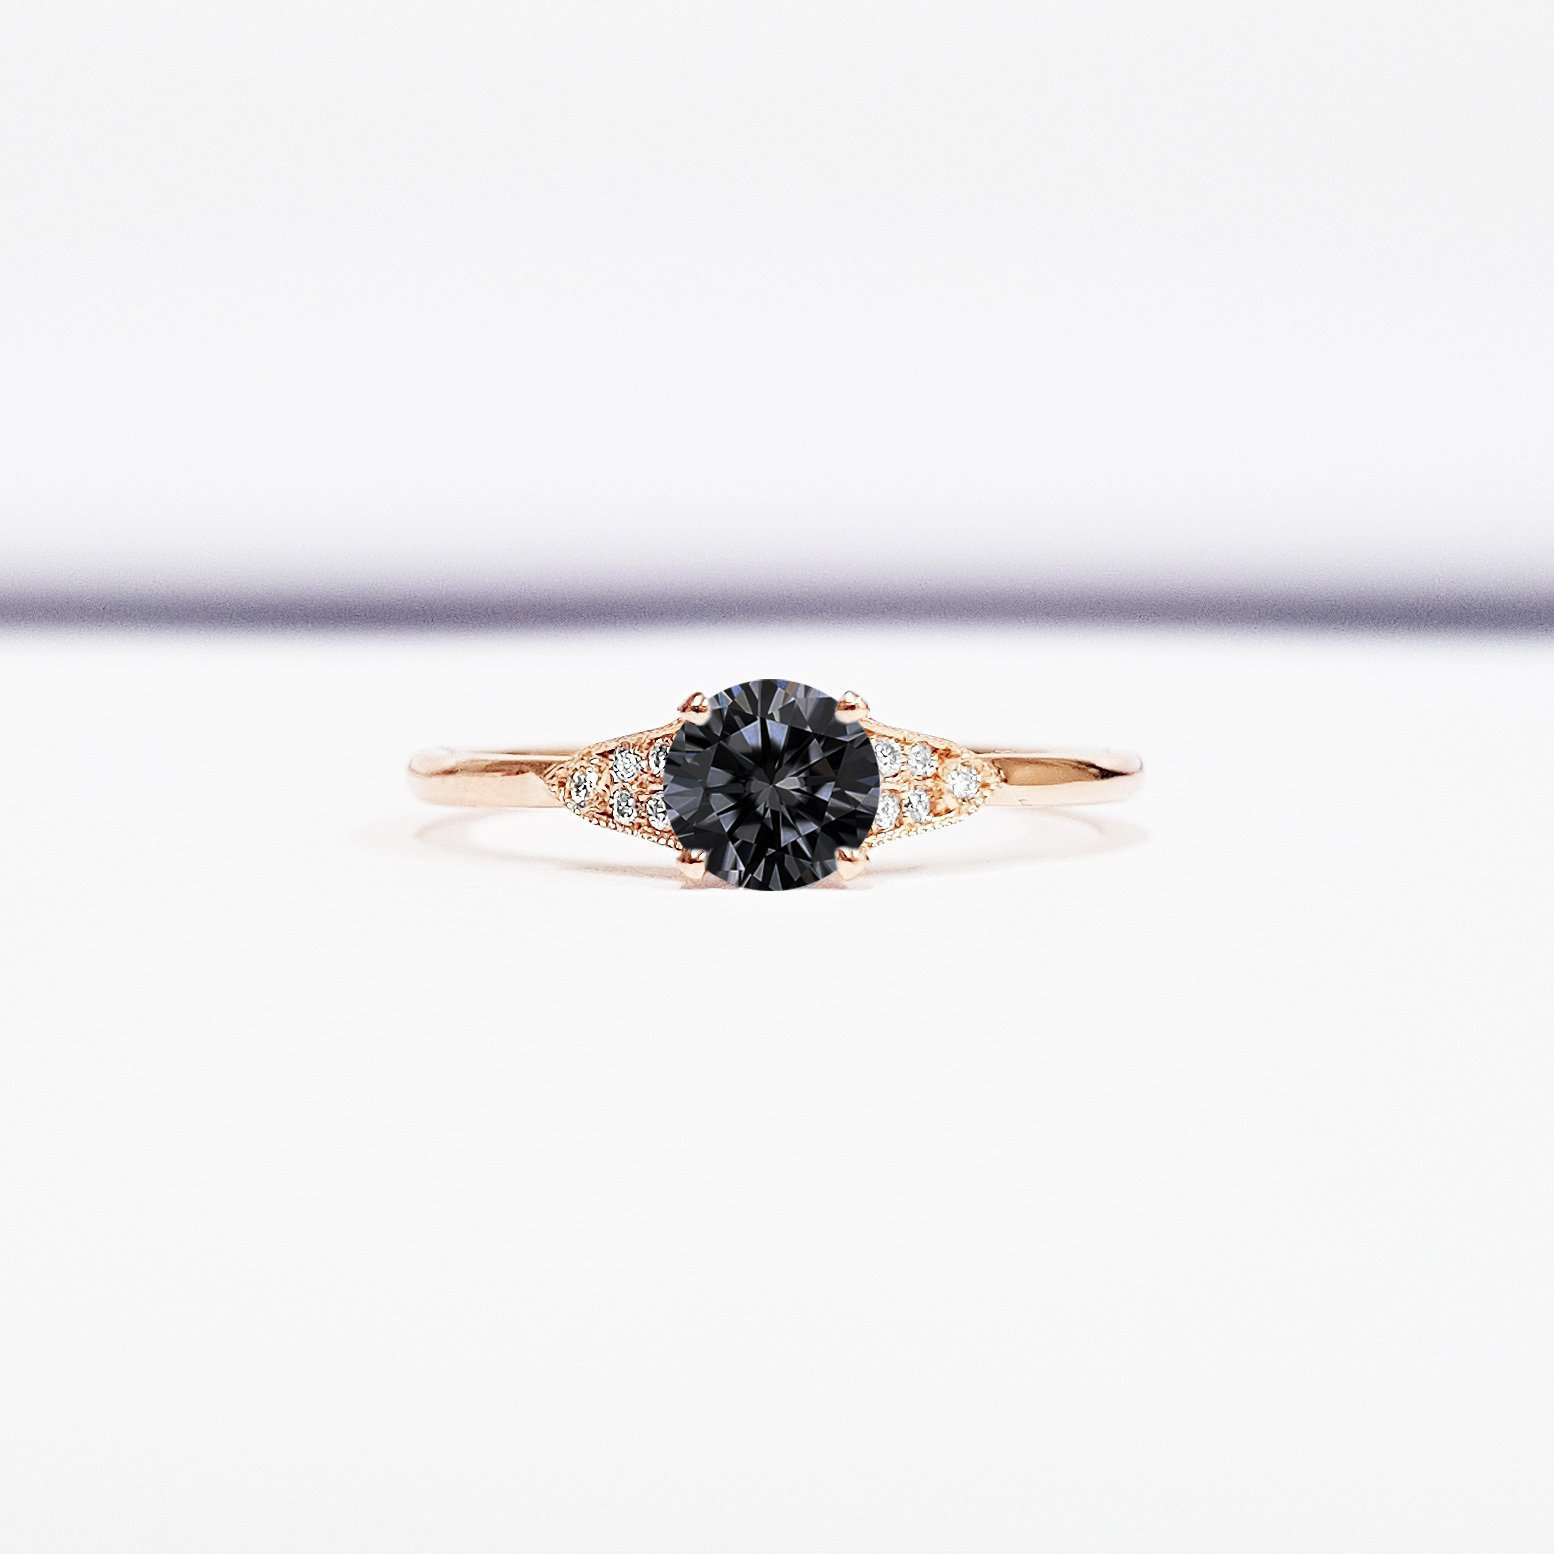 Grey moissanite and diamond engagement ring handmade in gold or platinum  antique 1920s art deco inspired